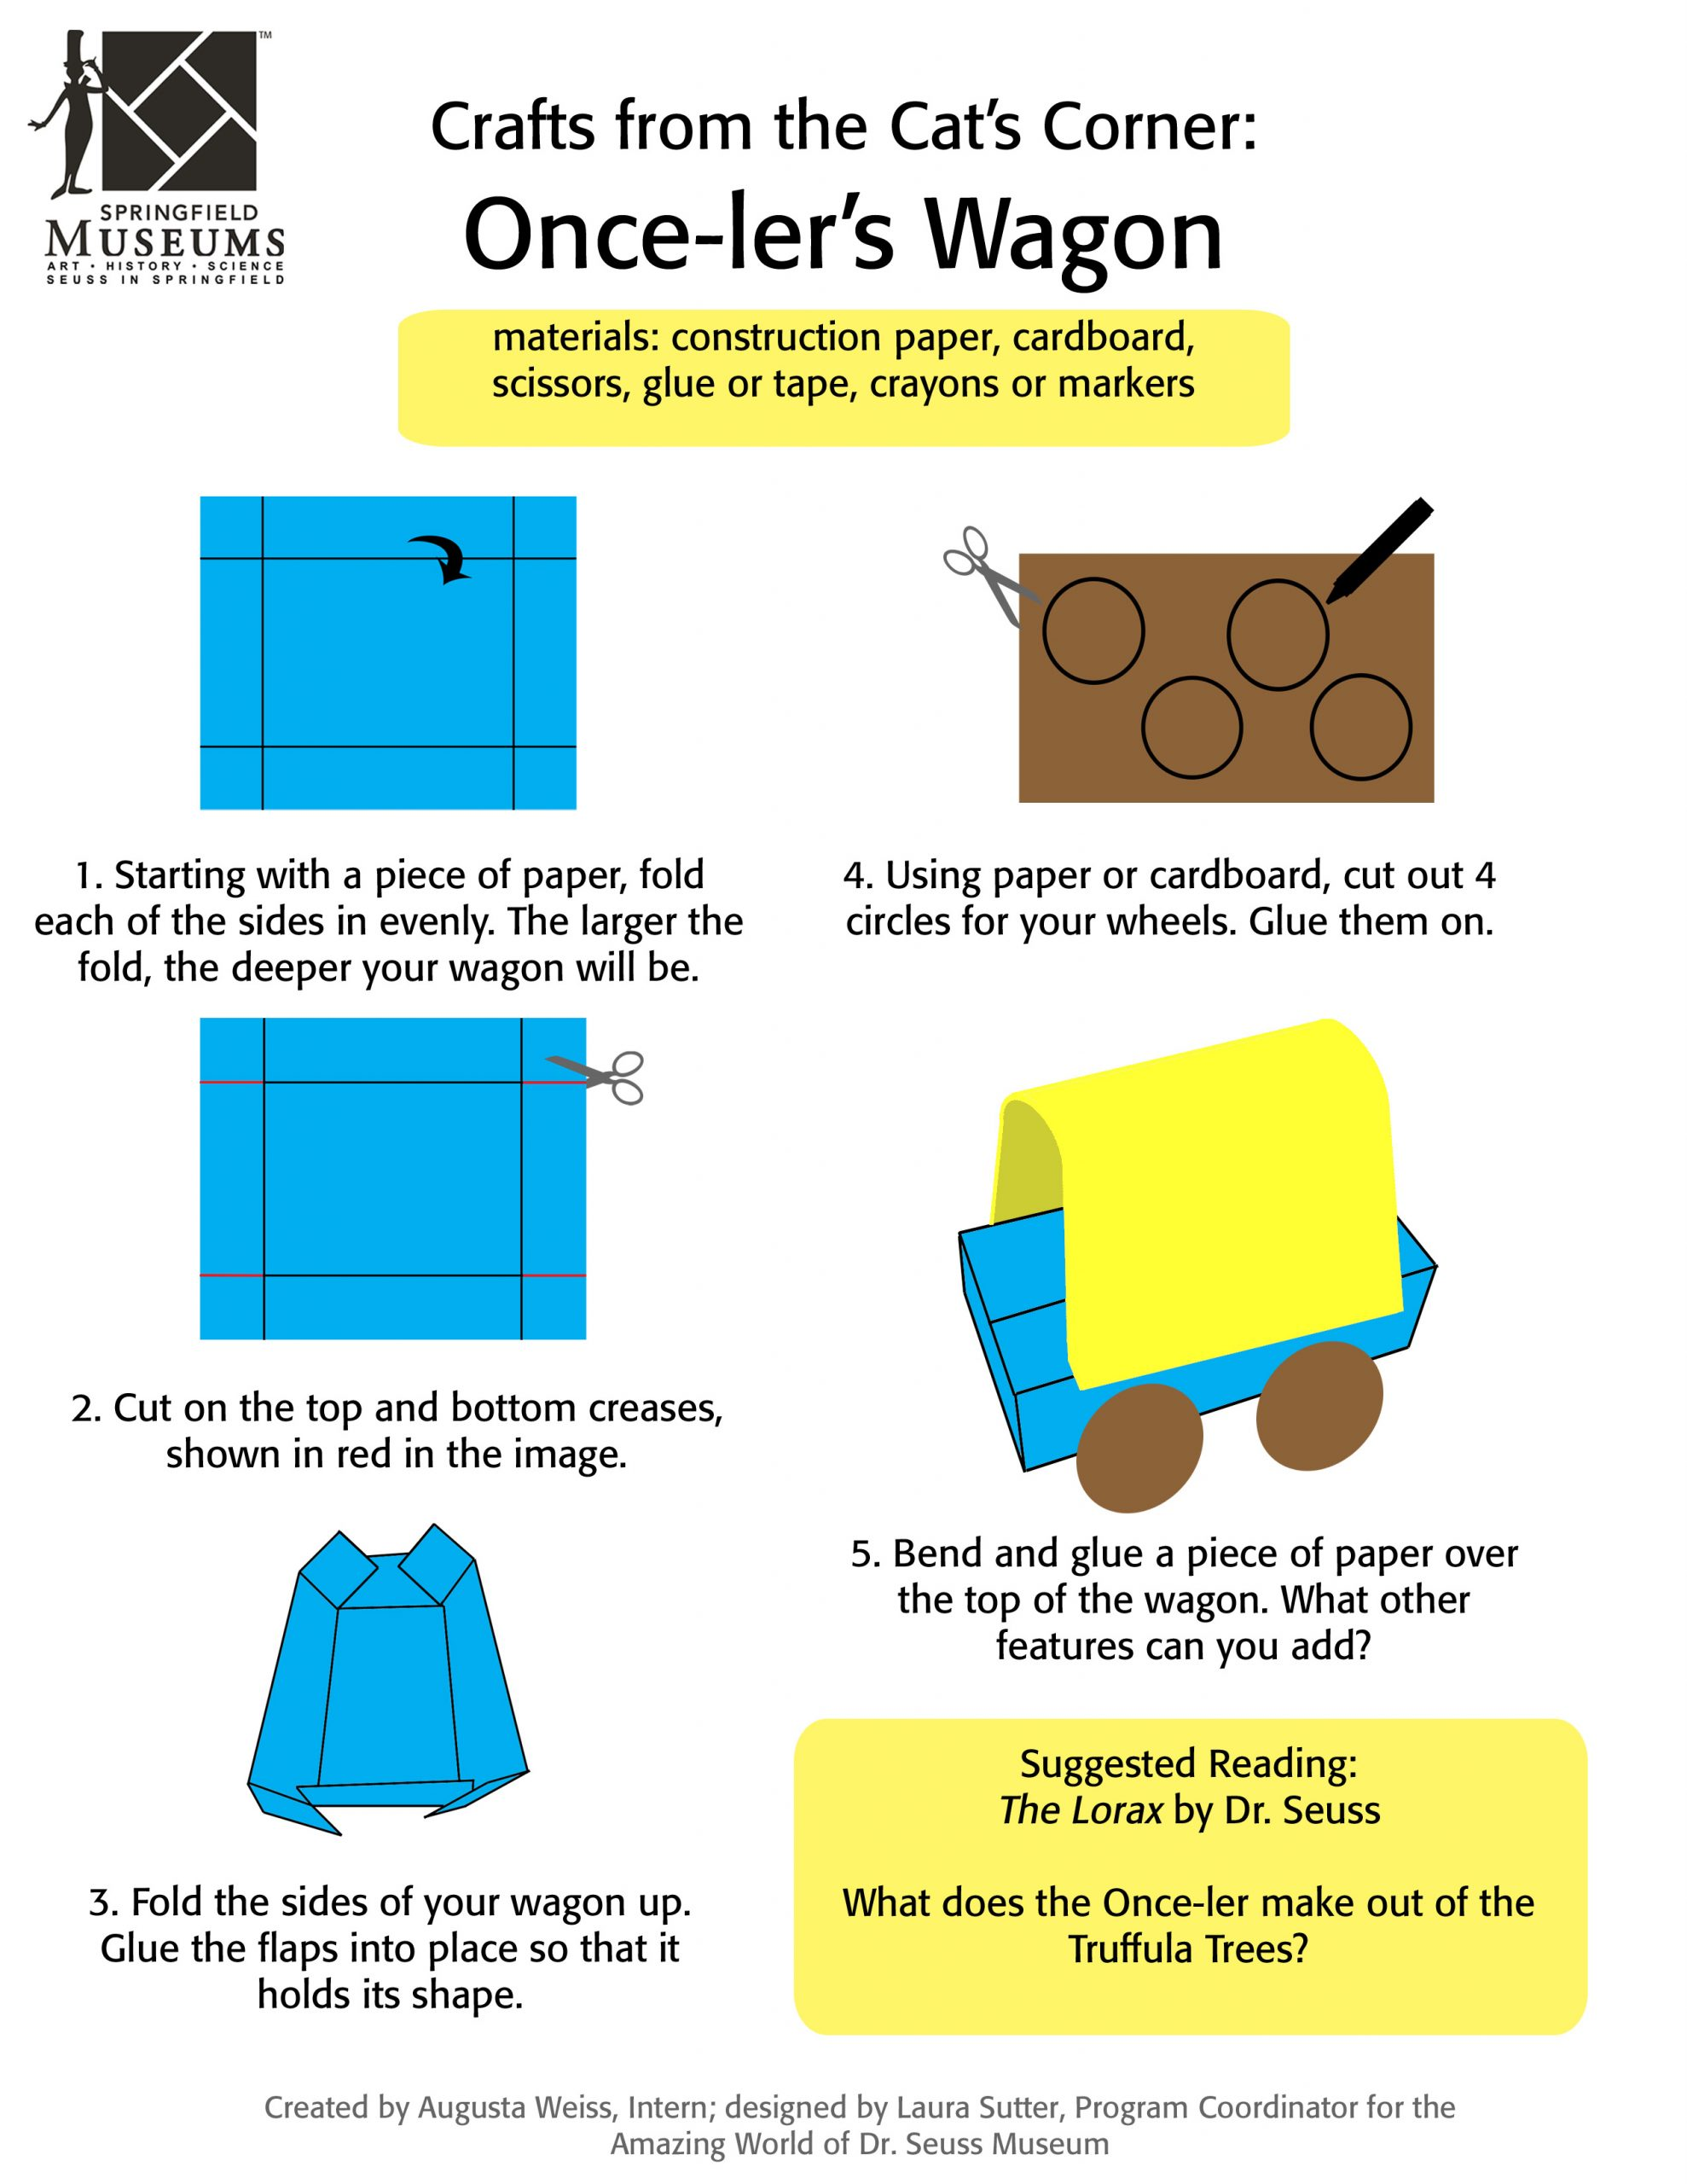 Crafts from the Cat's Corner: Once-ler's Wagon Activity Instructions